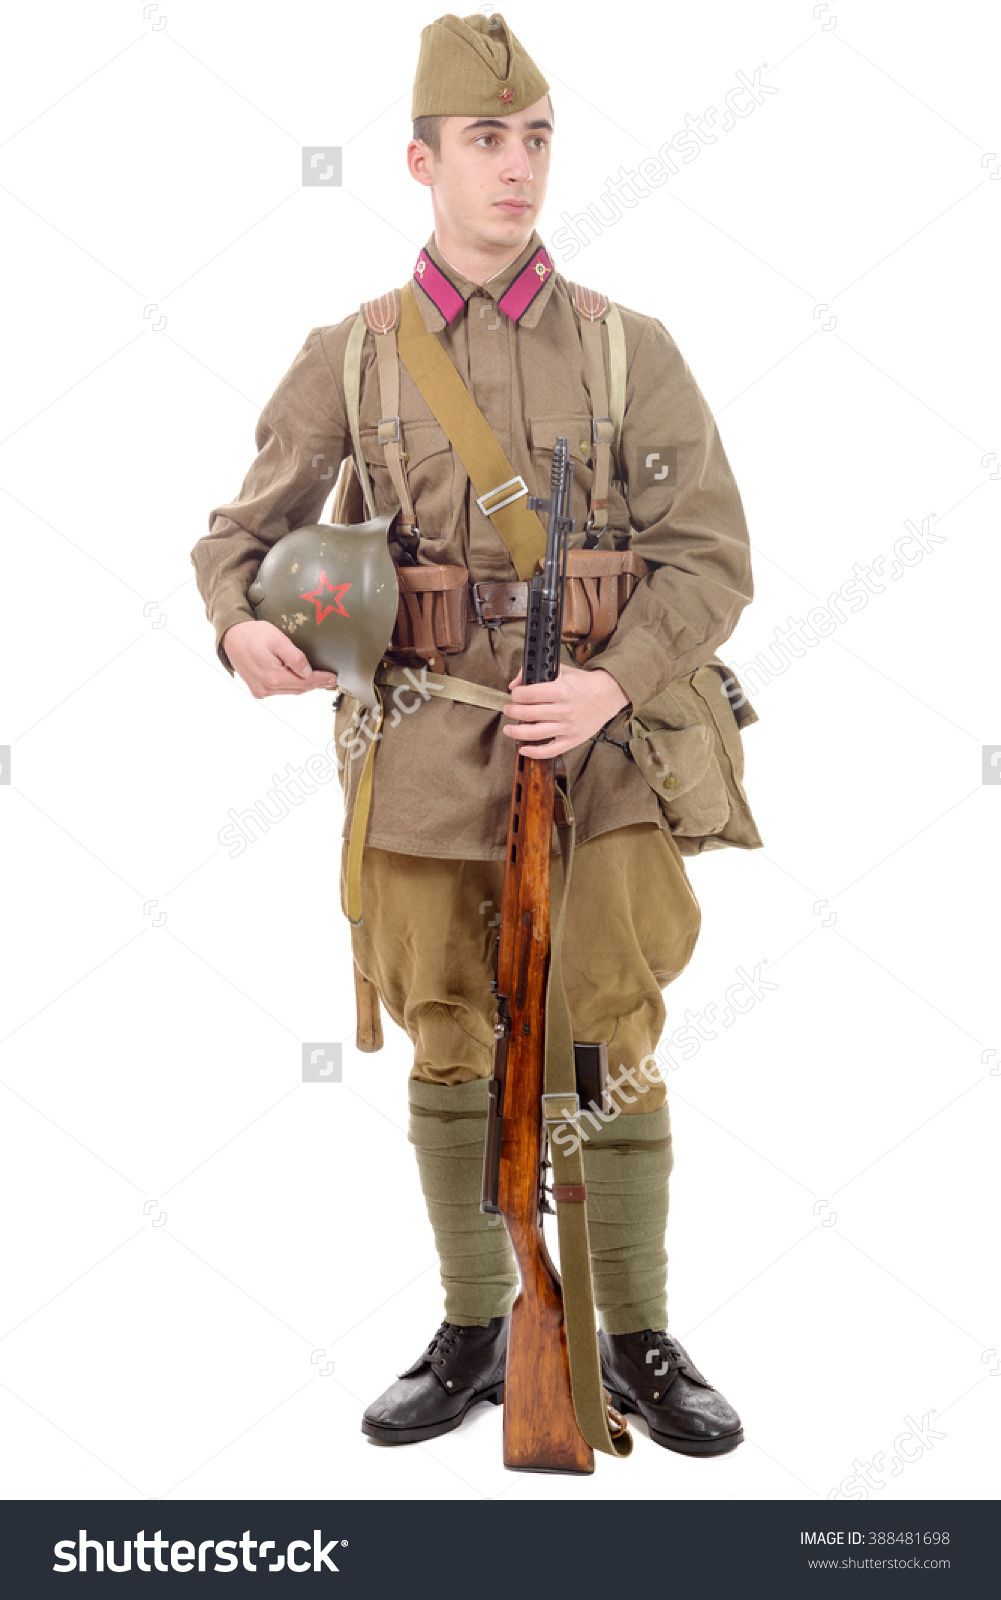 A Young Soviet Soldier With Rifle On The White Background Stock Photo 388481698…